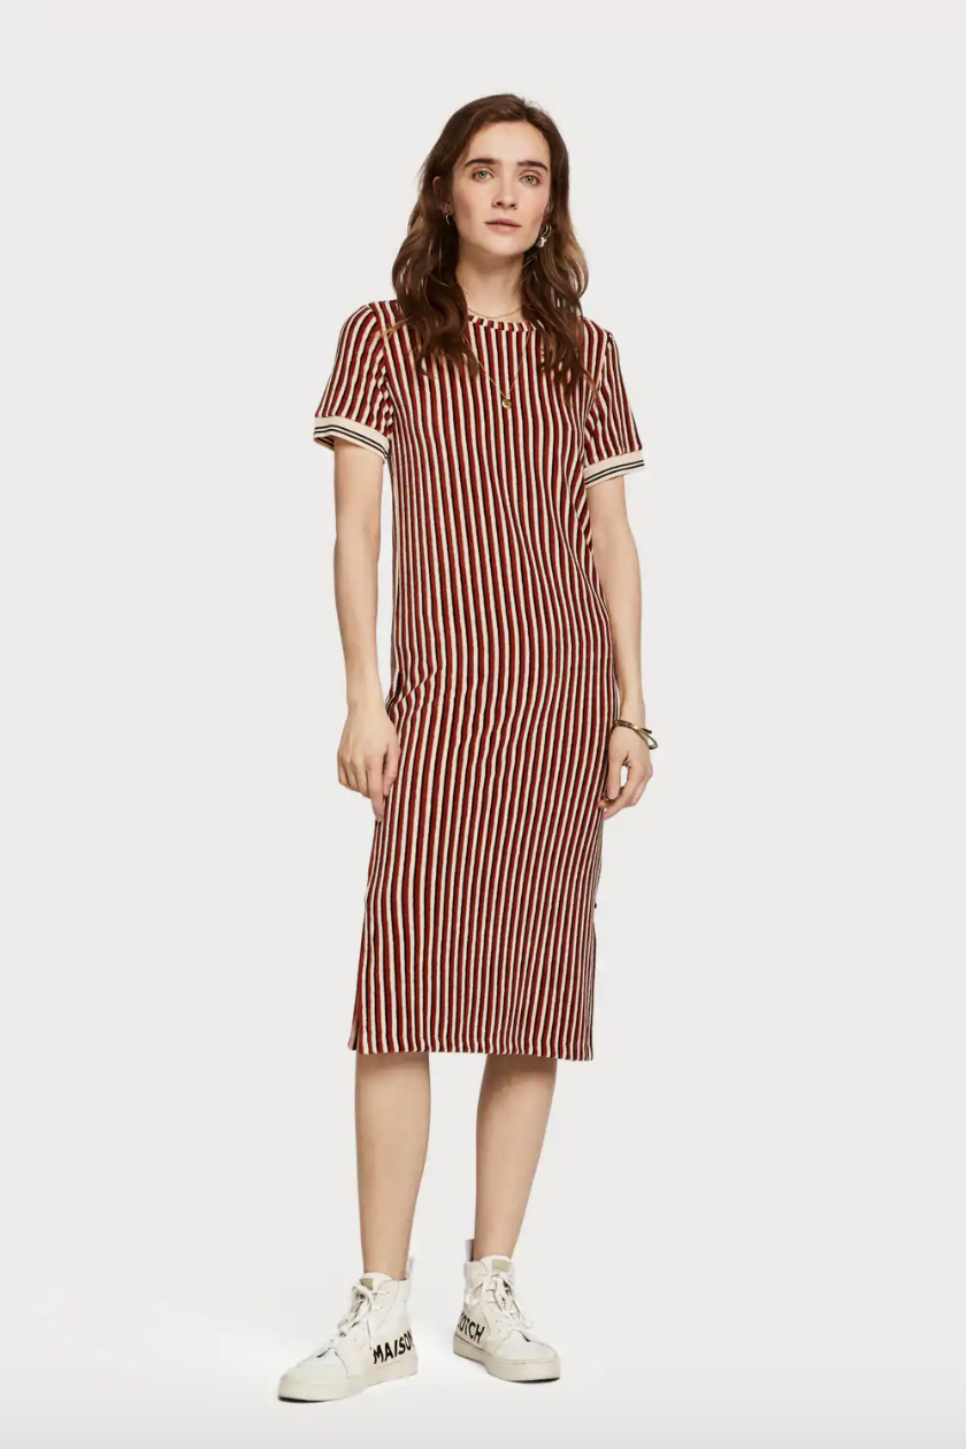 Scotch & Soda - Striped Midi Dress - Terracotta - Front